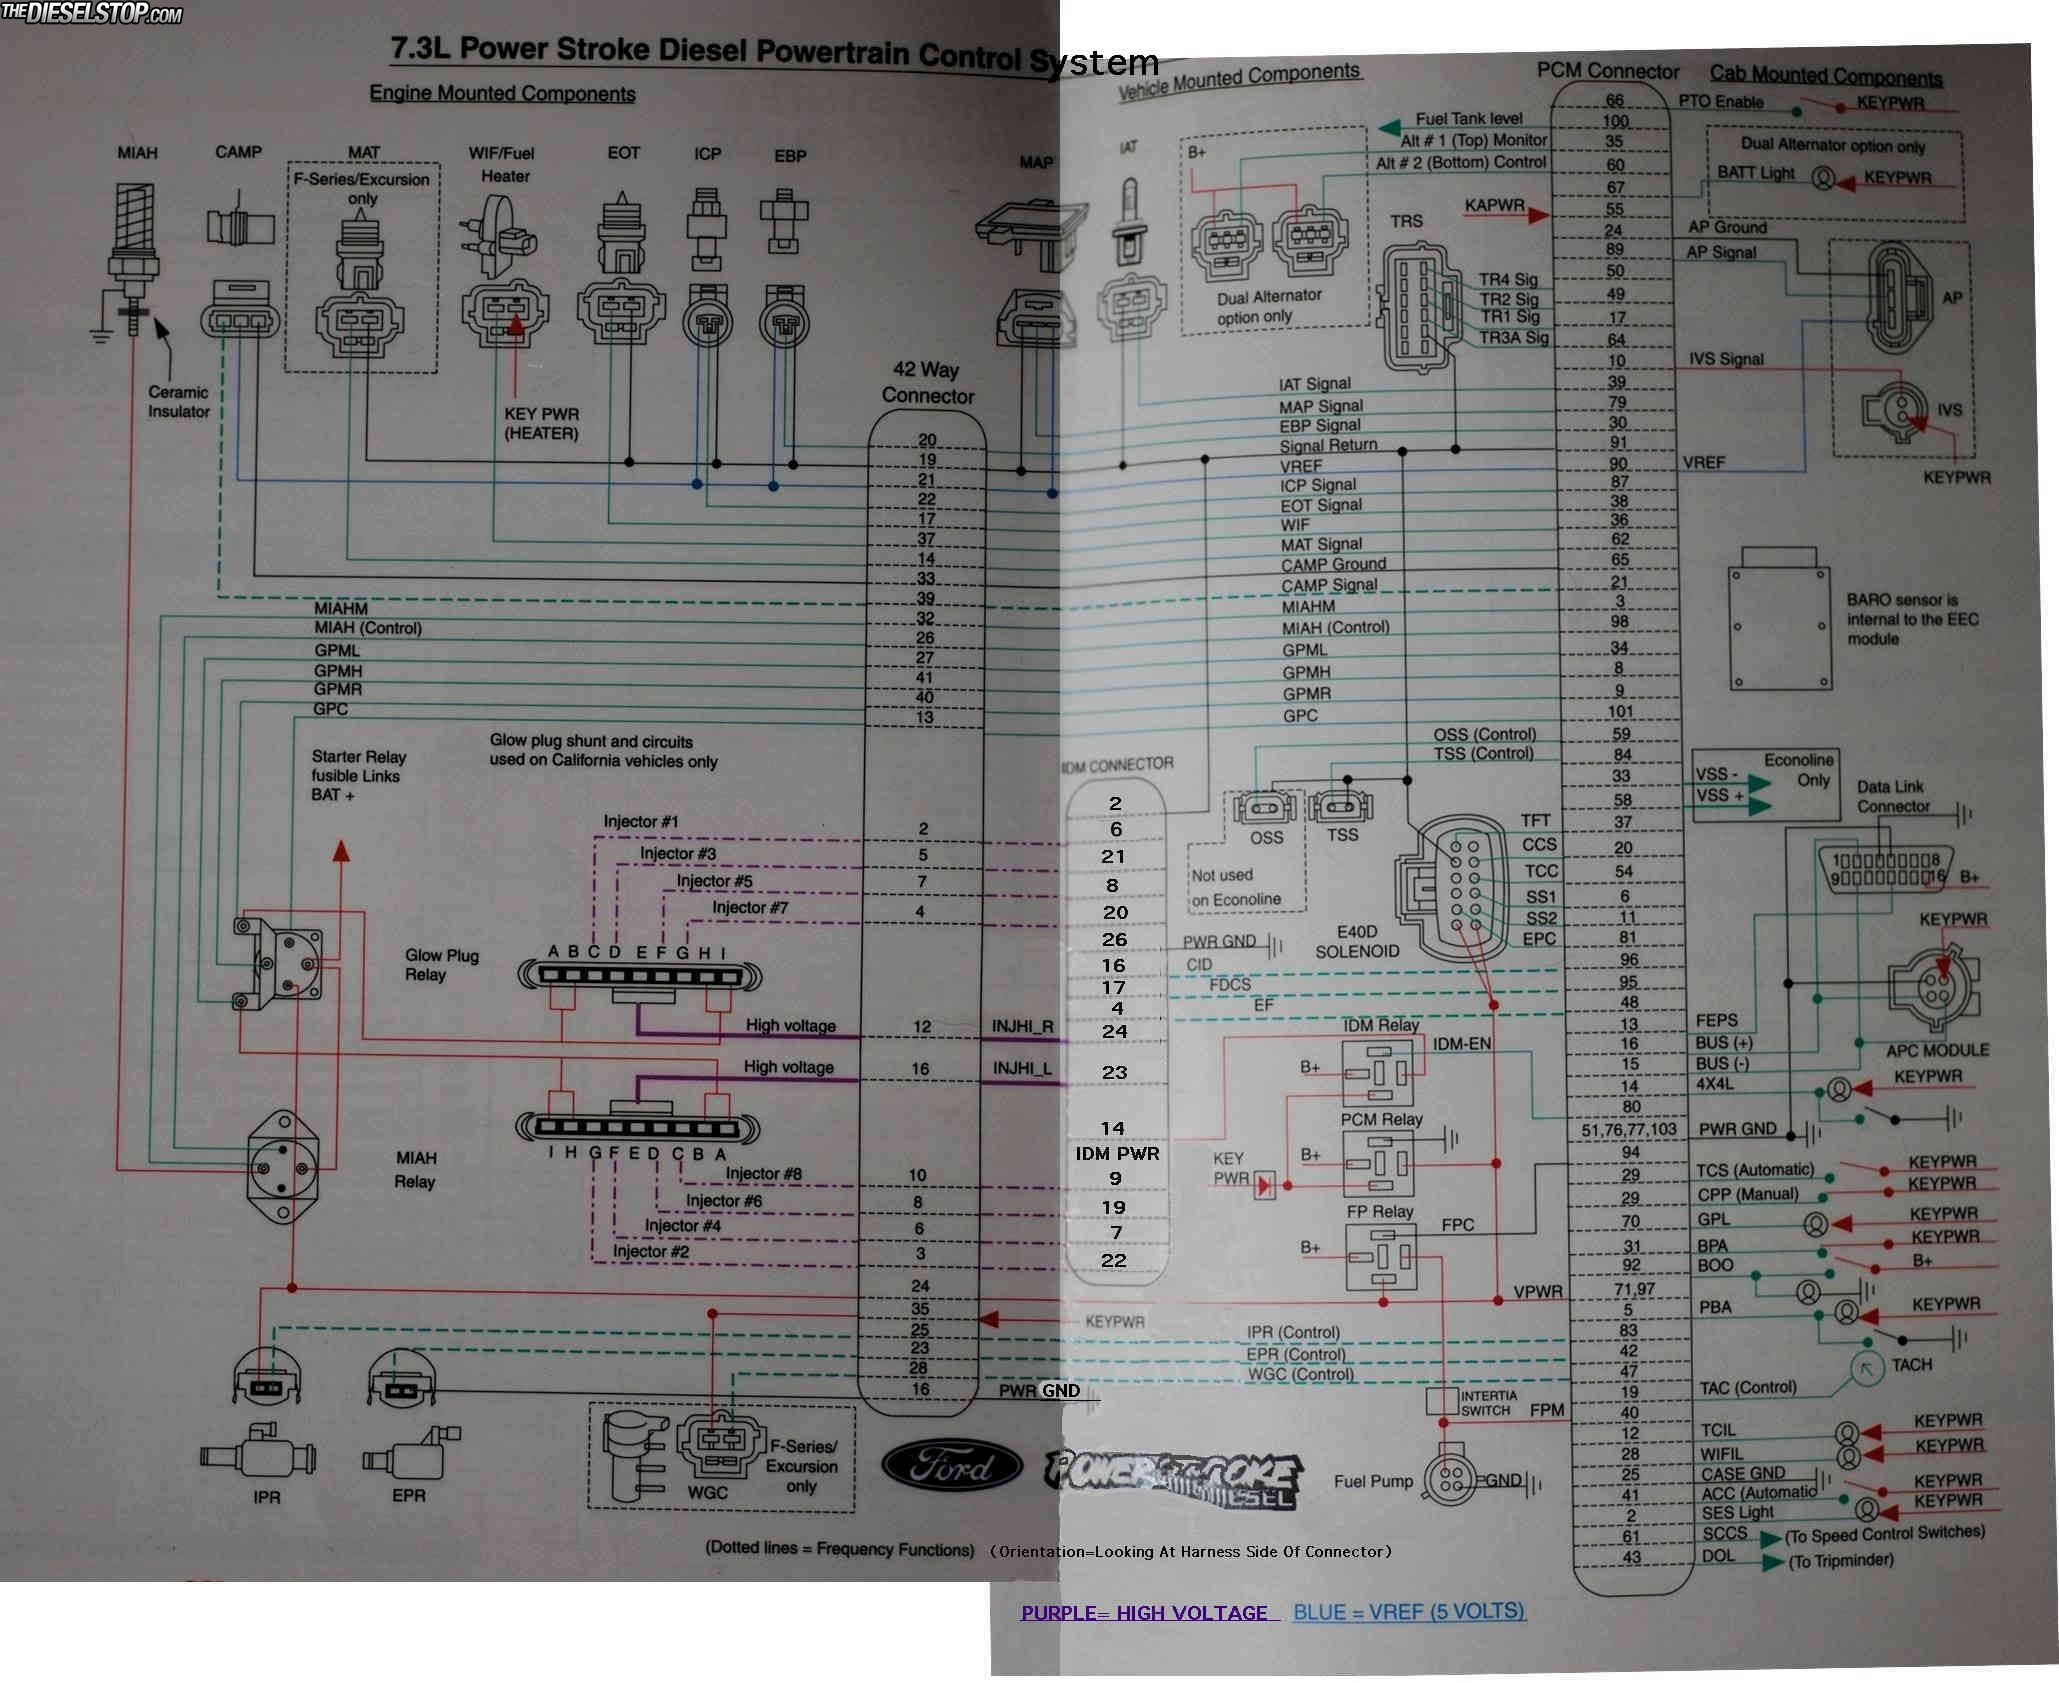 7 3 Powerstroke Parts Diagram 7 3l Wiring Schematic Printable Very Handy Diesel forum Of 7 3 Powerstroke Parts Diagram Glow Engine Diagram Experts Wiring Diagram •